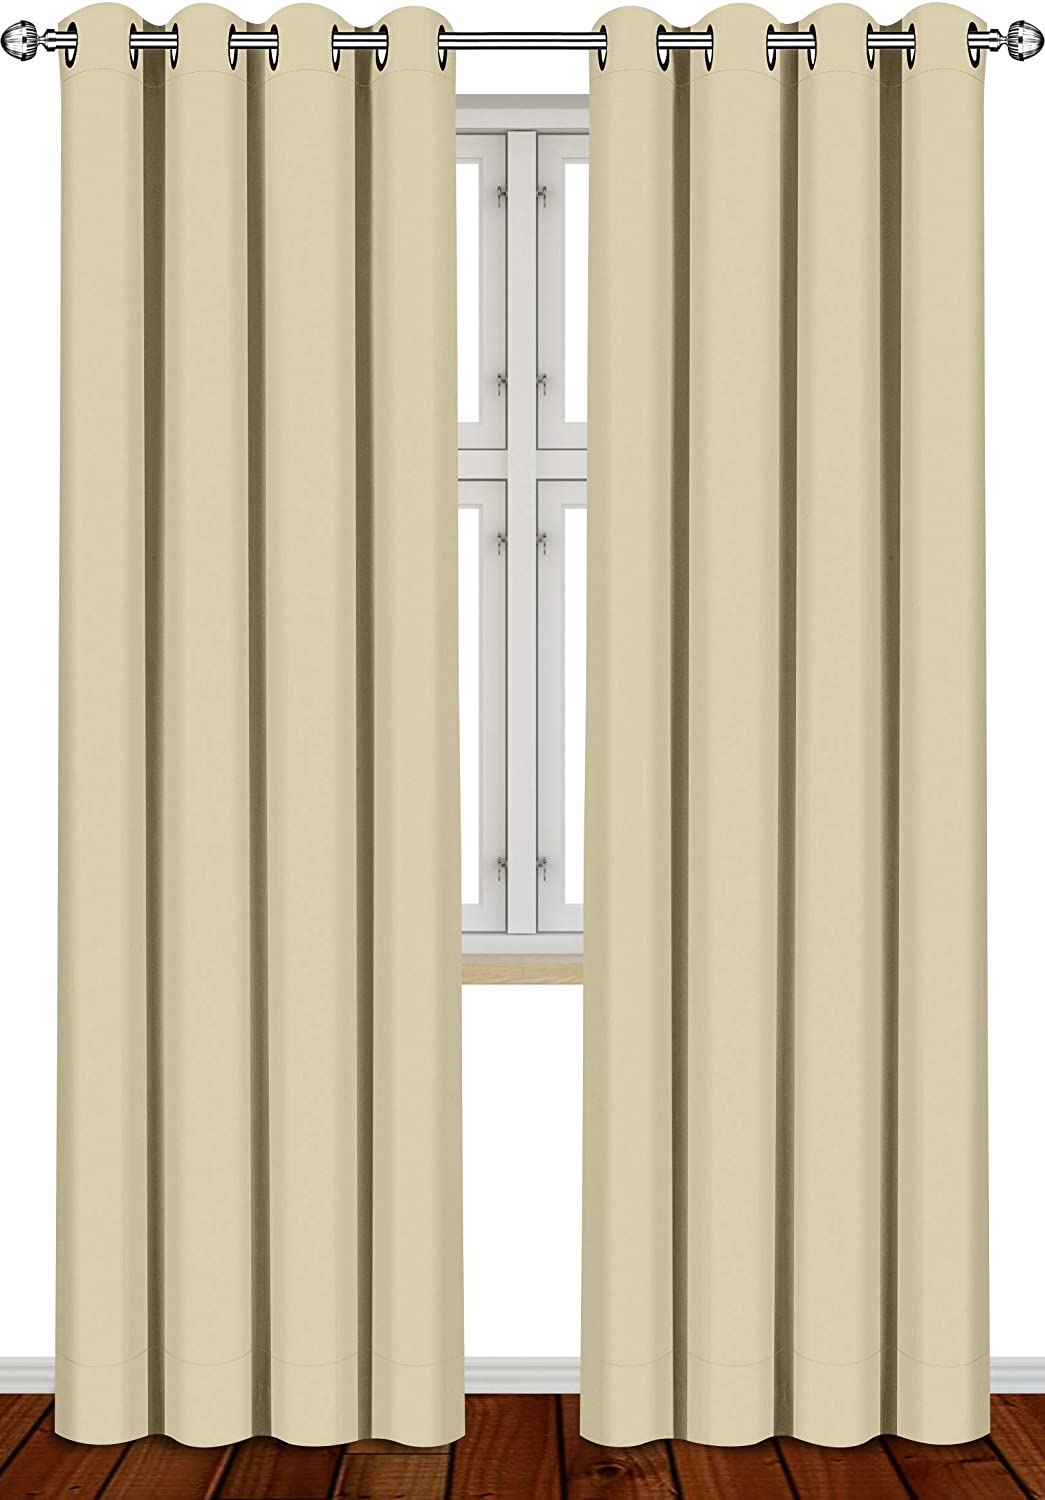 Utopia Bedding 2 Panels Eyelet Blackout Curtains Thermal Insulated for Bedroom, W55 x L96 Inches, Beige